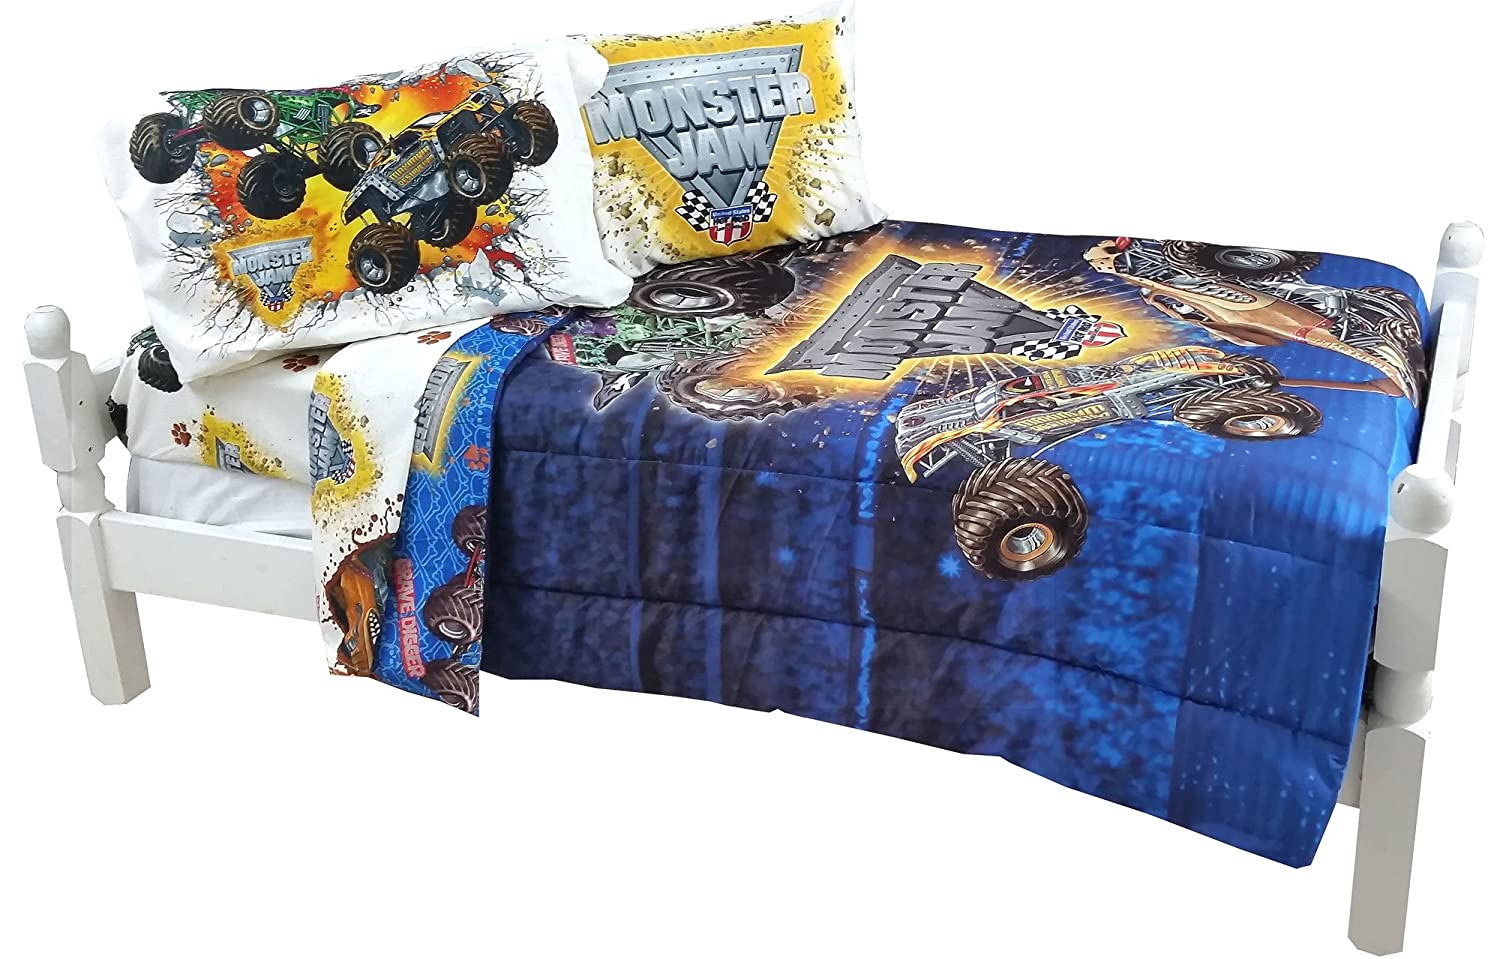 Amazon.com: 5pc Monster Jam Full Bedding Set Grave Digger Maximum  Destruction Comforter And Sheet Set: Home U0026 Kitchen